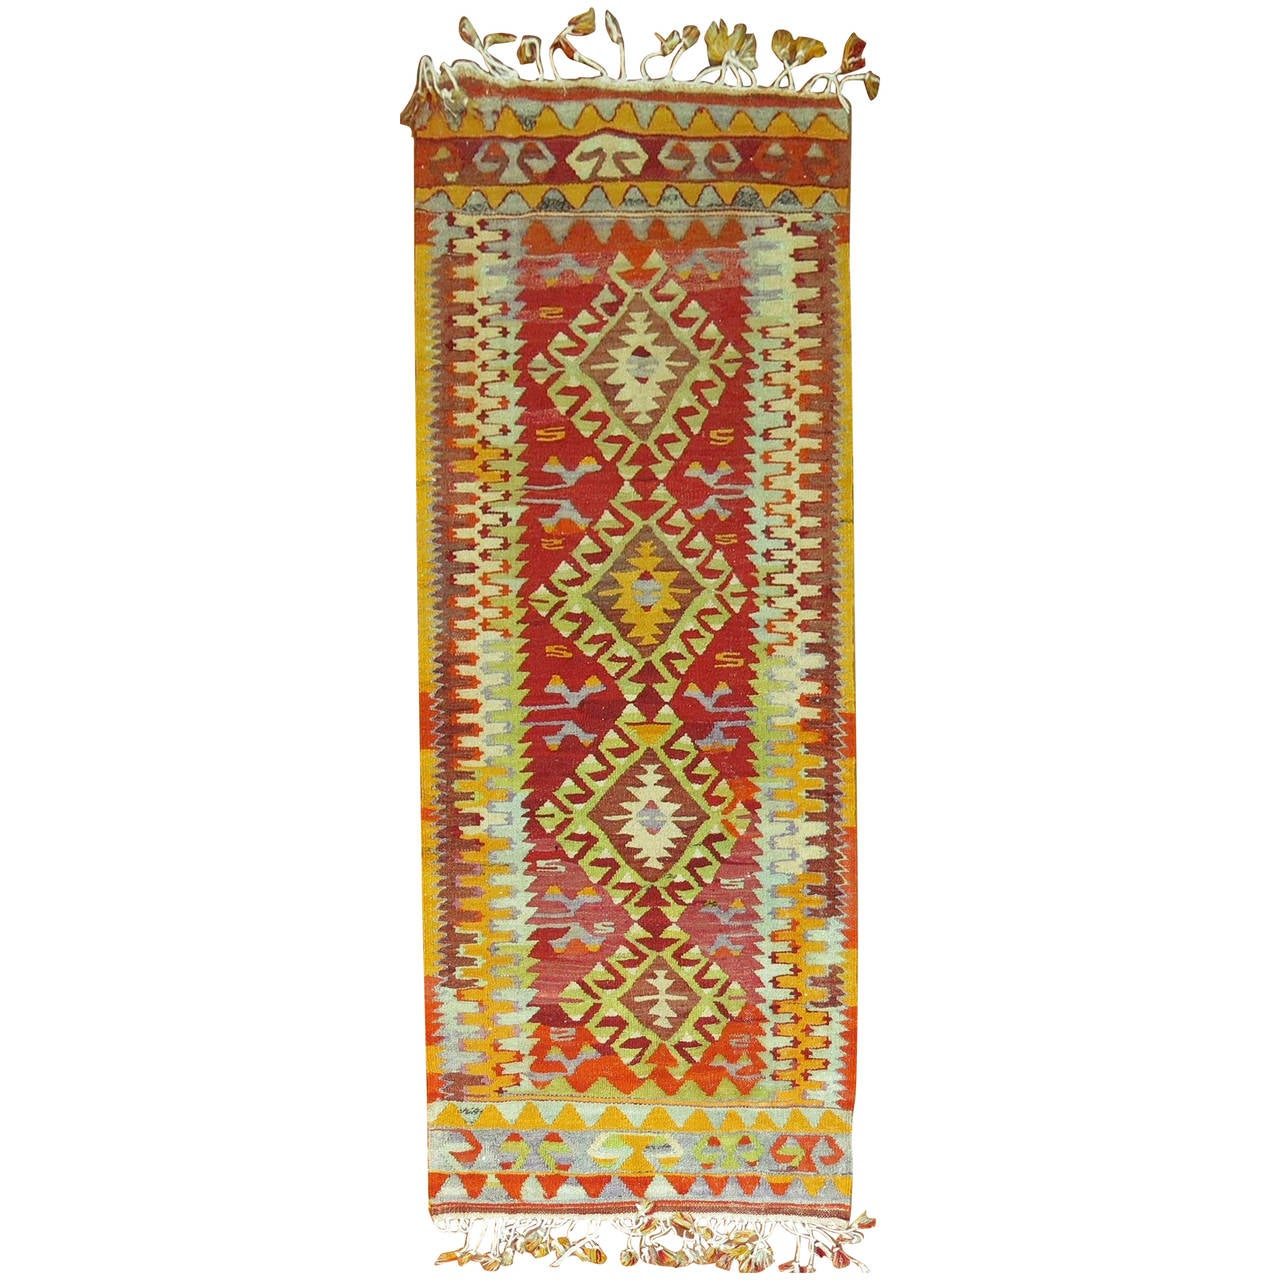 Narrow Kilim Runner in Bright Colors 1